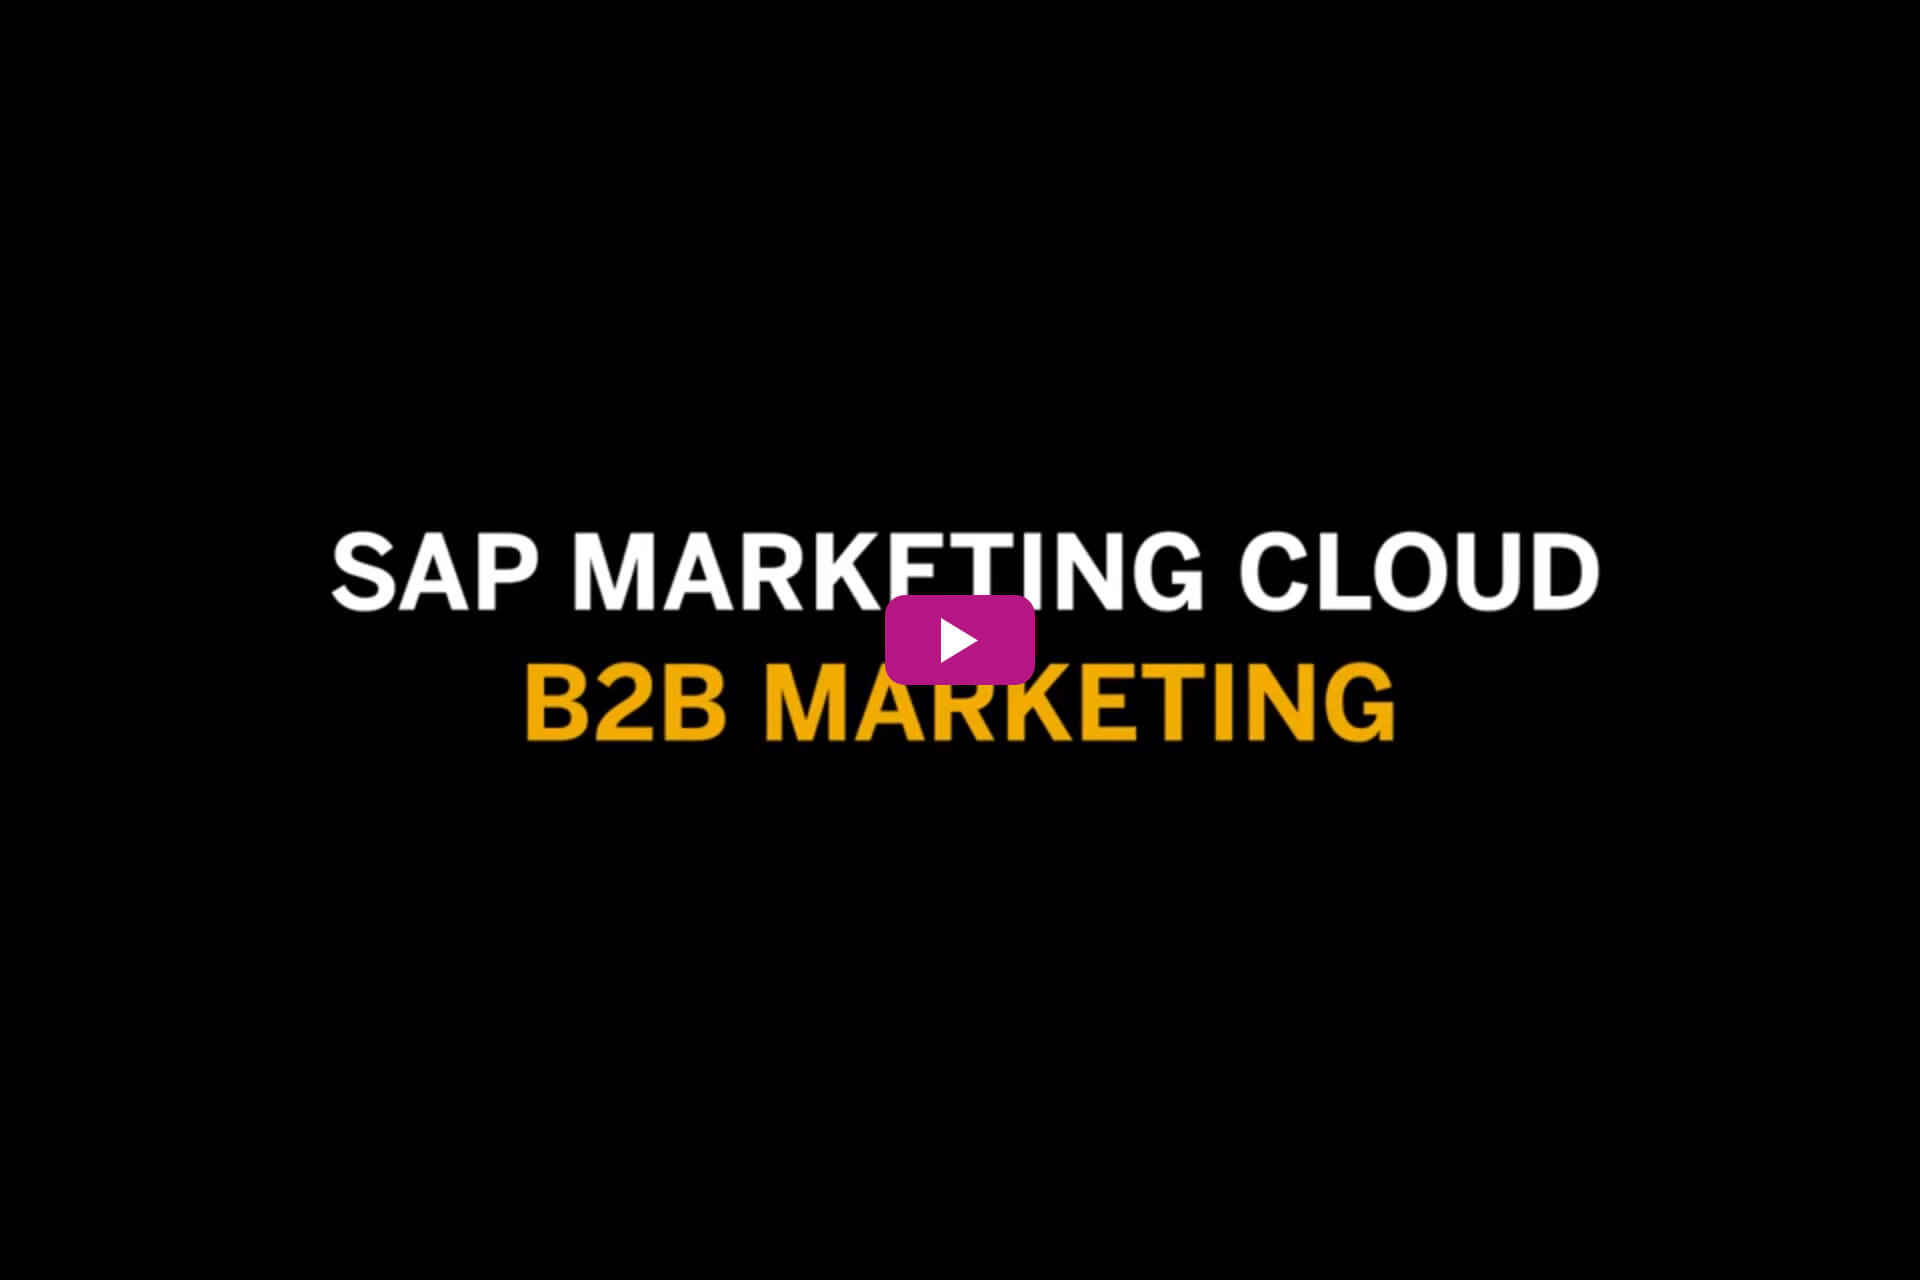 SAP Marketing Cloud | Sybit GmbH